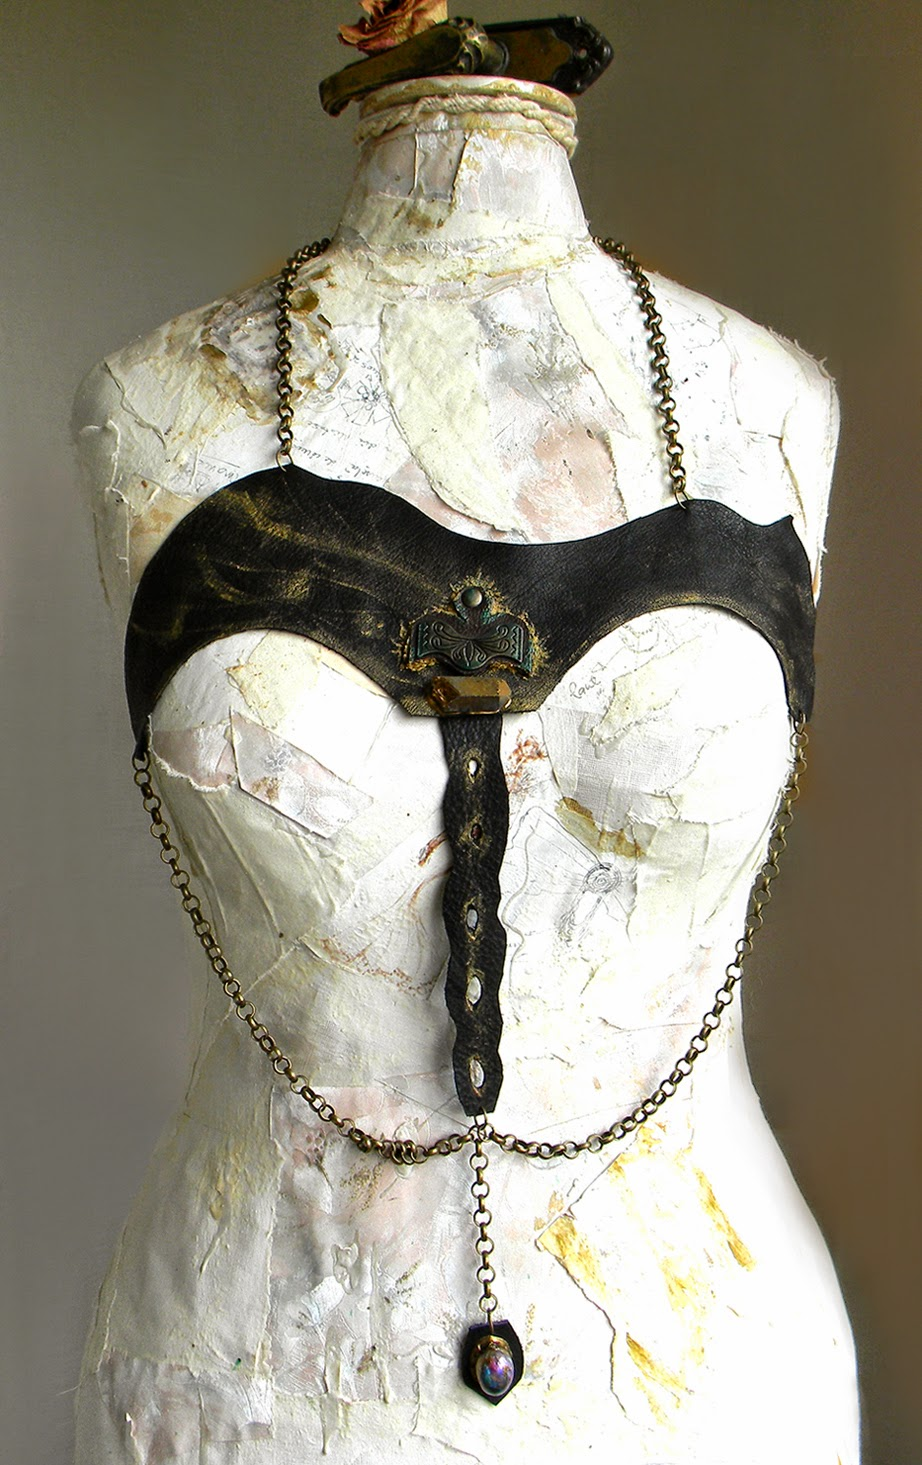 Sexy Leather Harness Statement Body Jewelry with Bronze Chains and Natural Crystal Quartz Applique